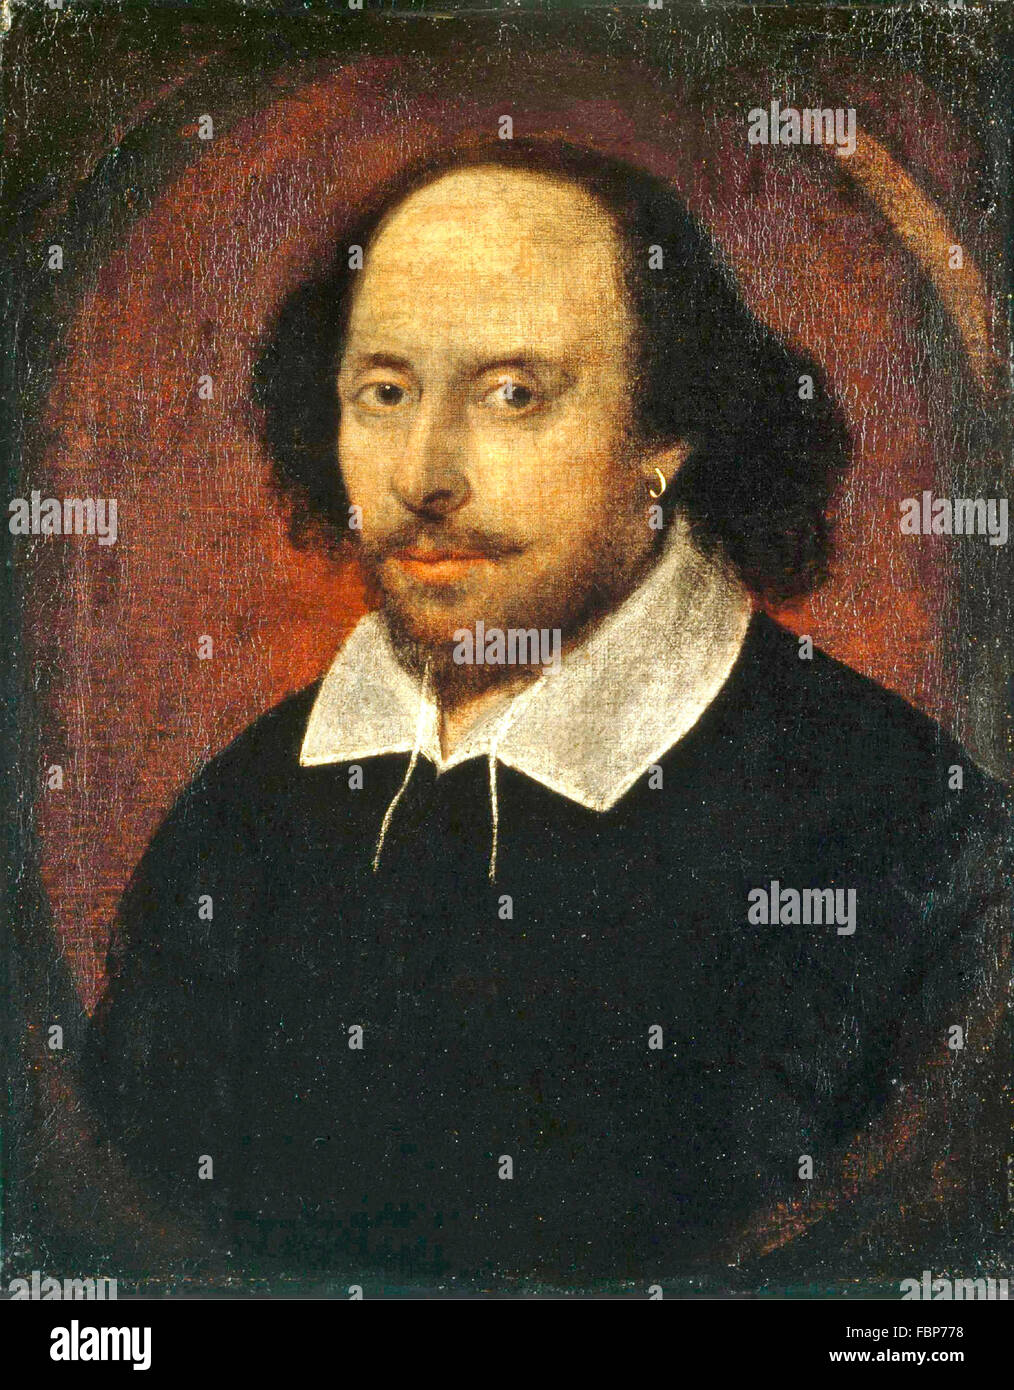 William Shakespearer. The 'Chandos Portrait' of William Shakespeare, by John Taylor (?), 1610 - Stock Image